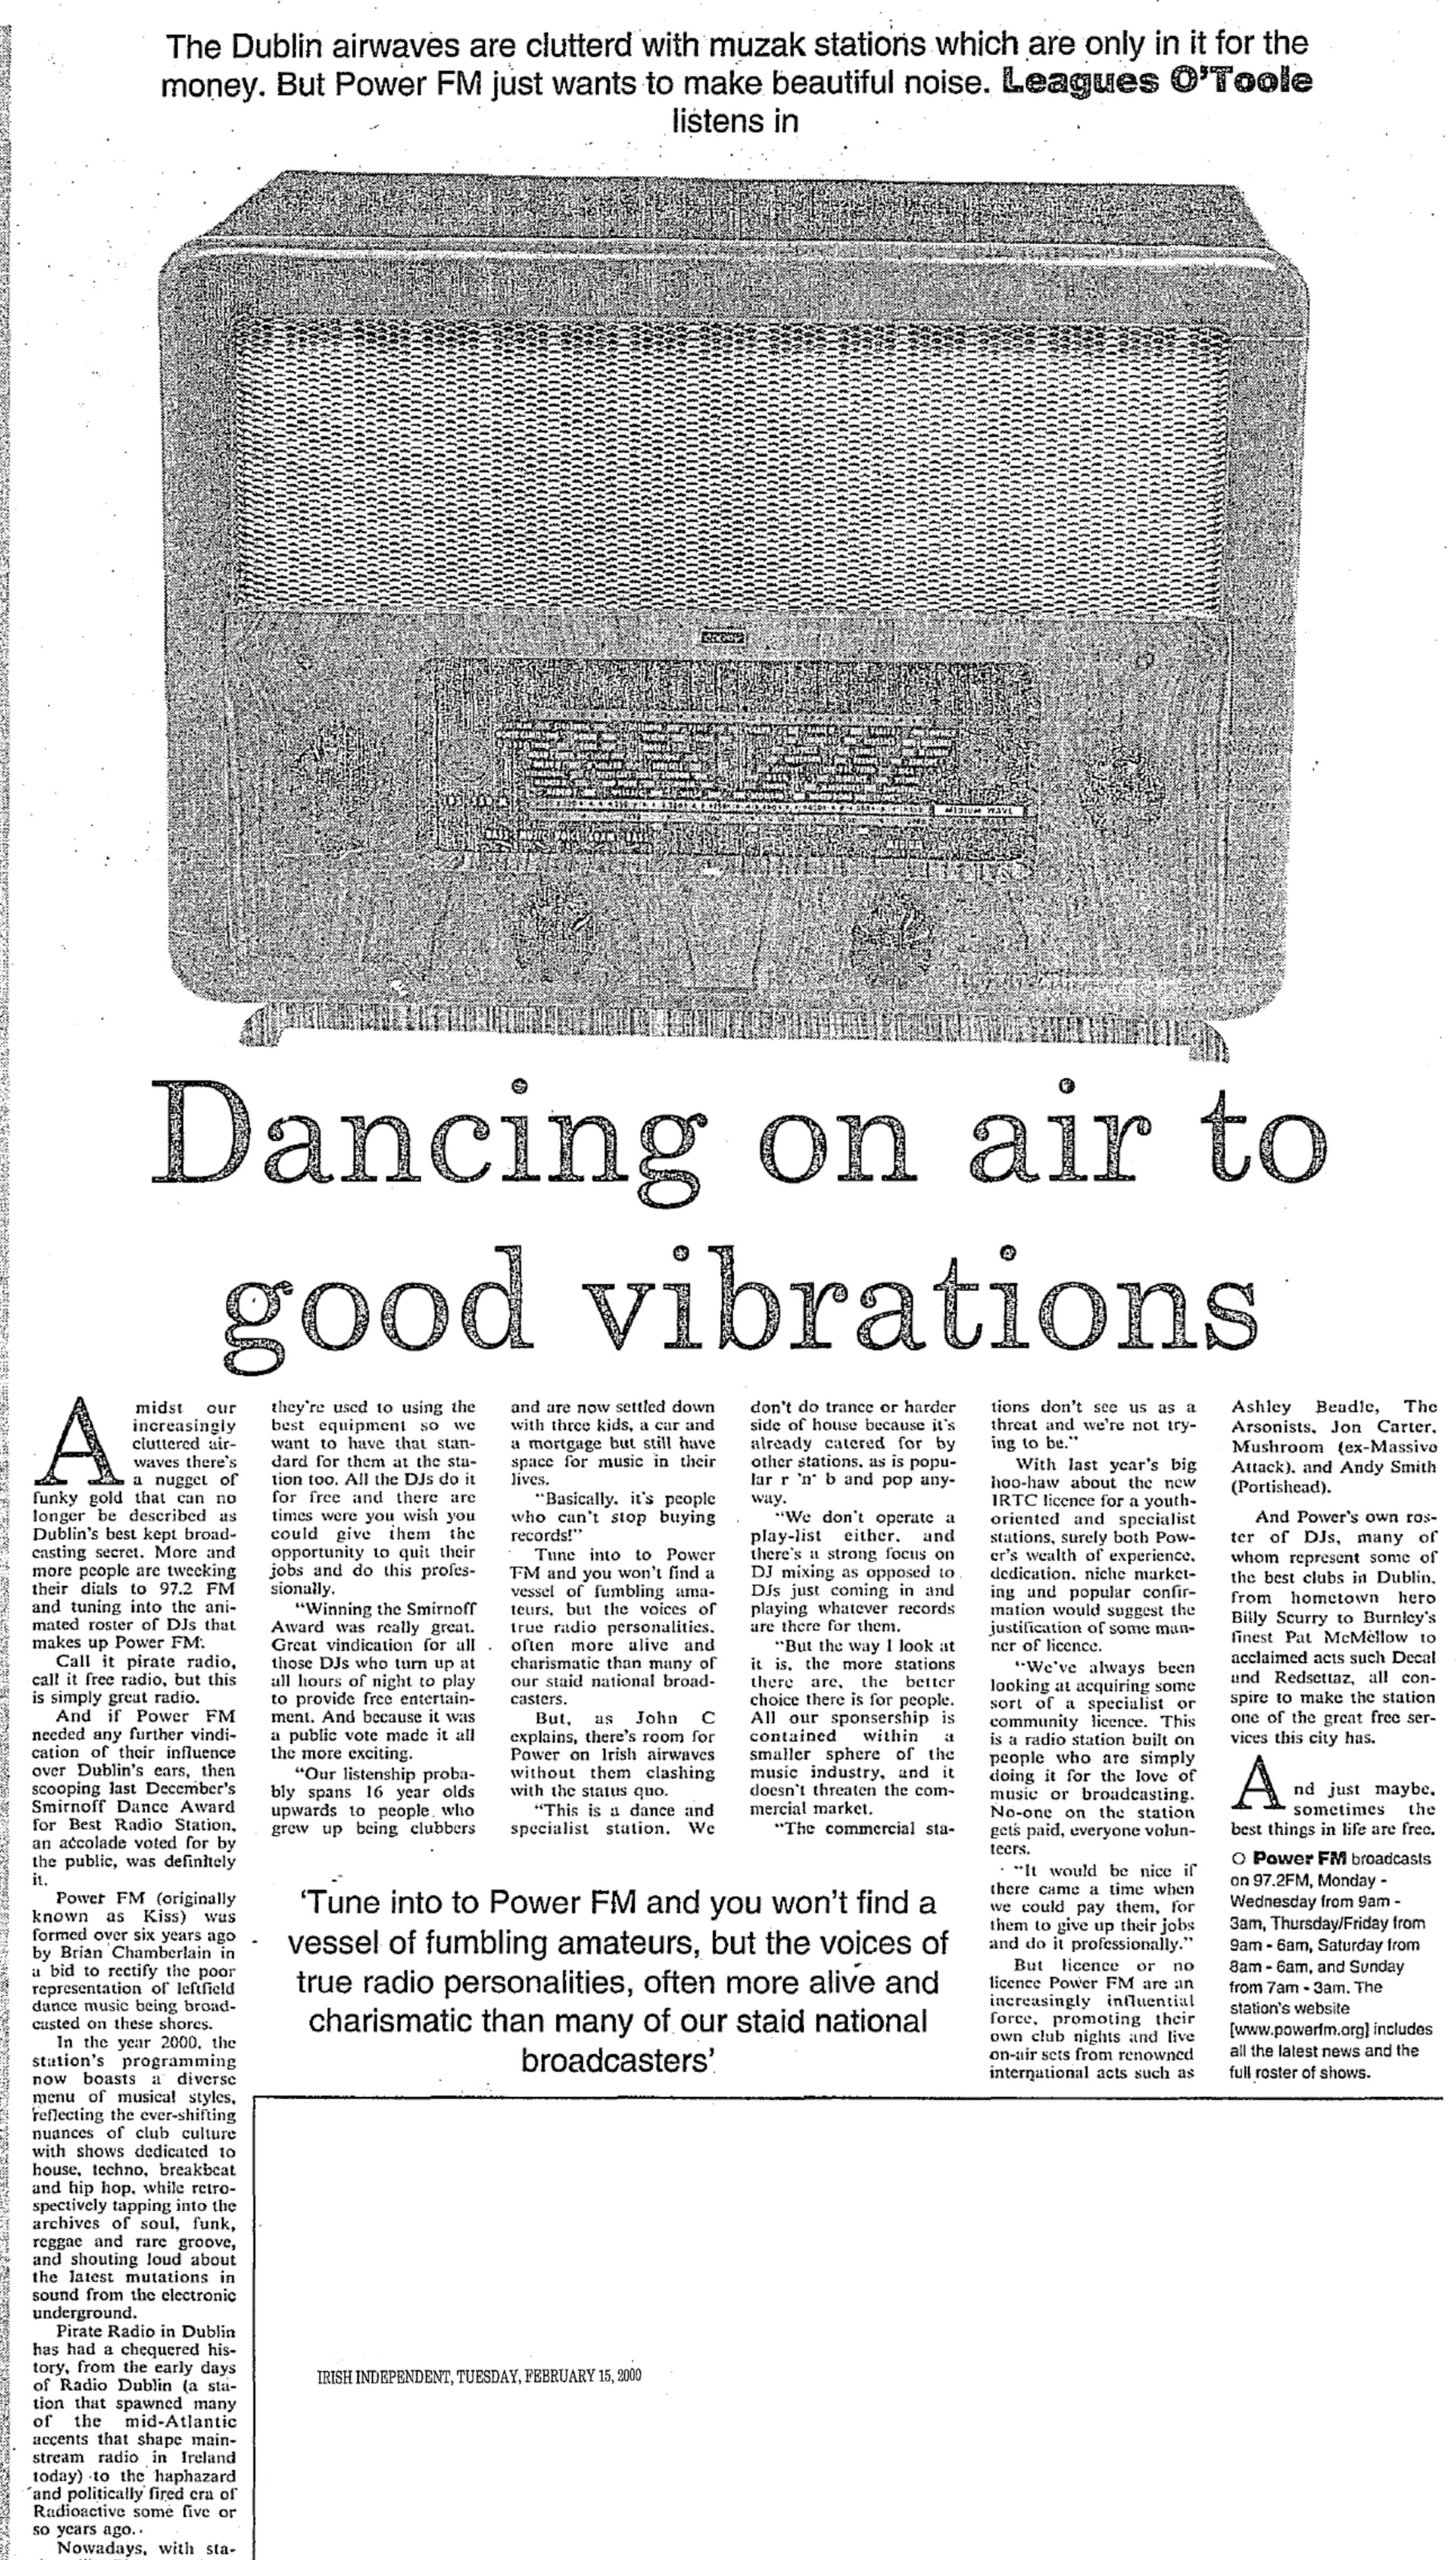 Power FM Dublin - Dancing on air to good vibrations